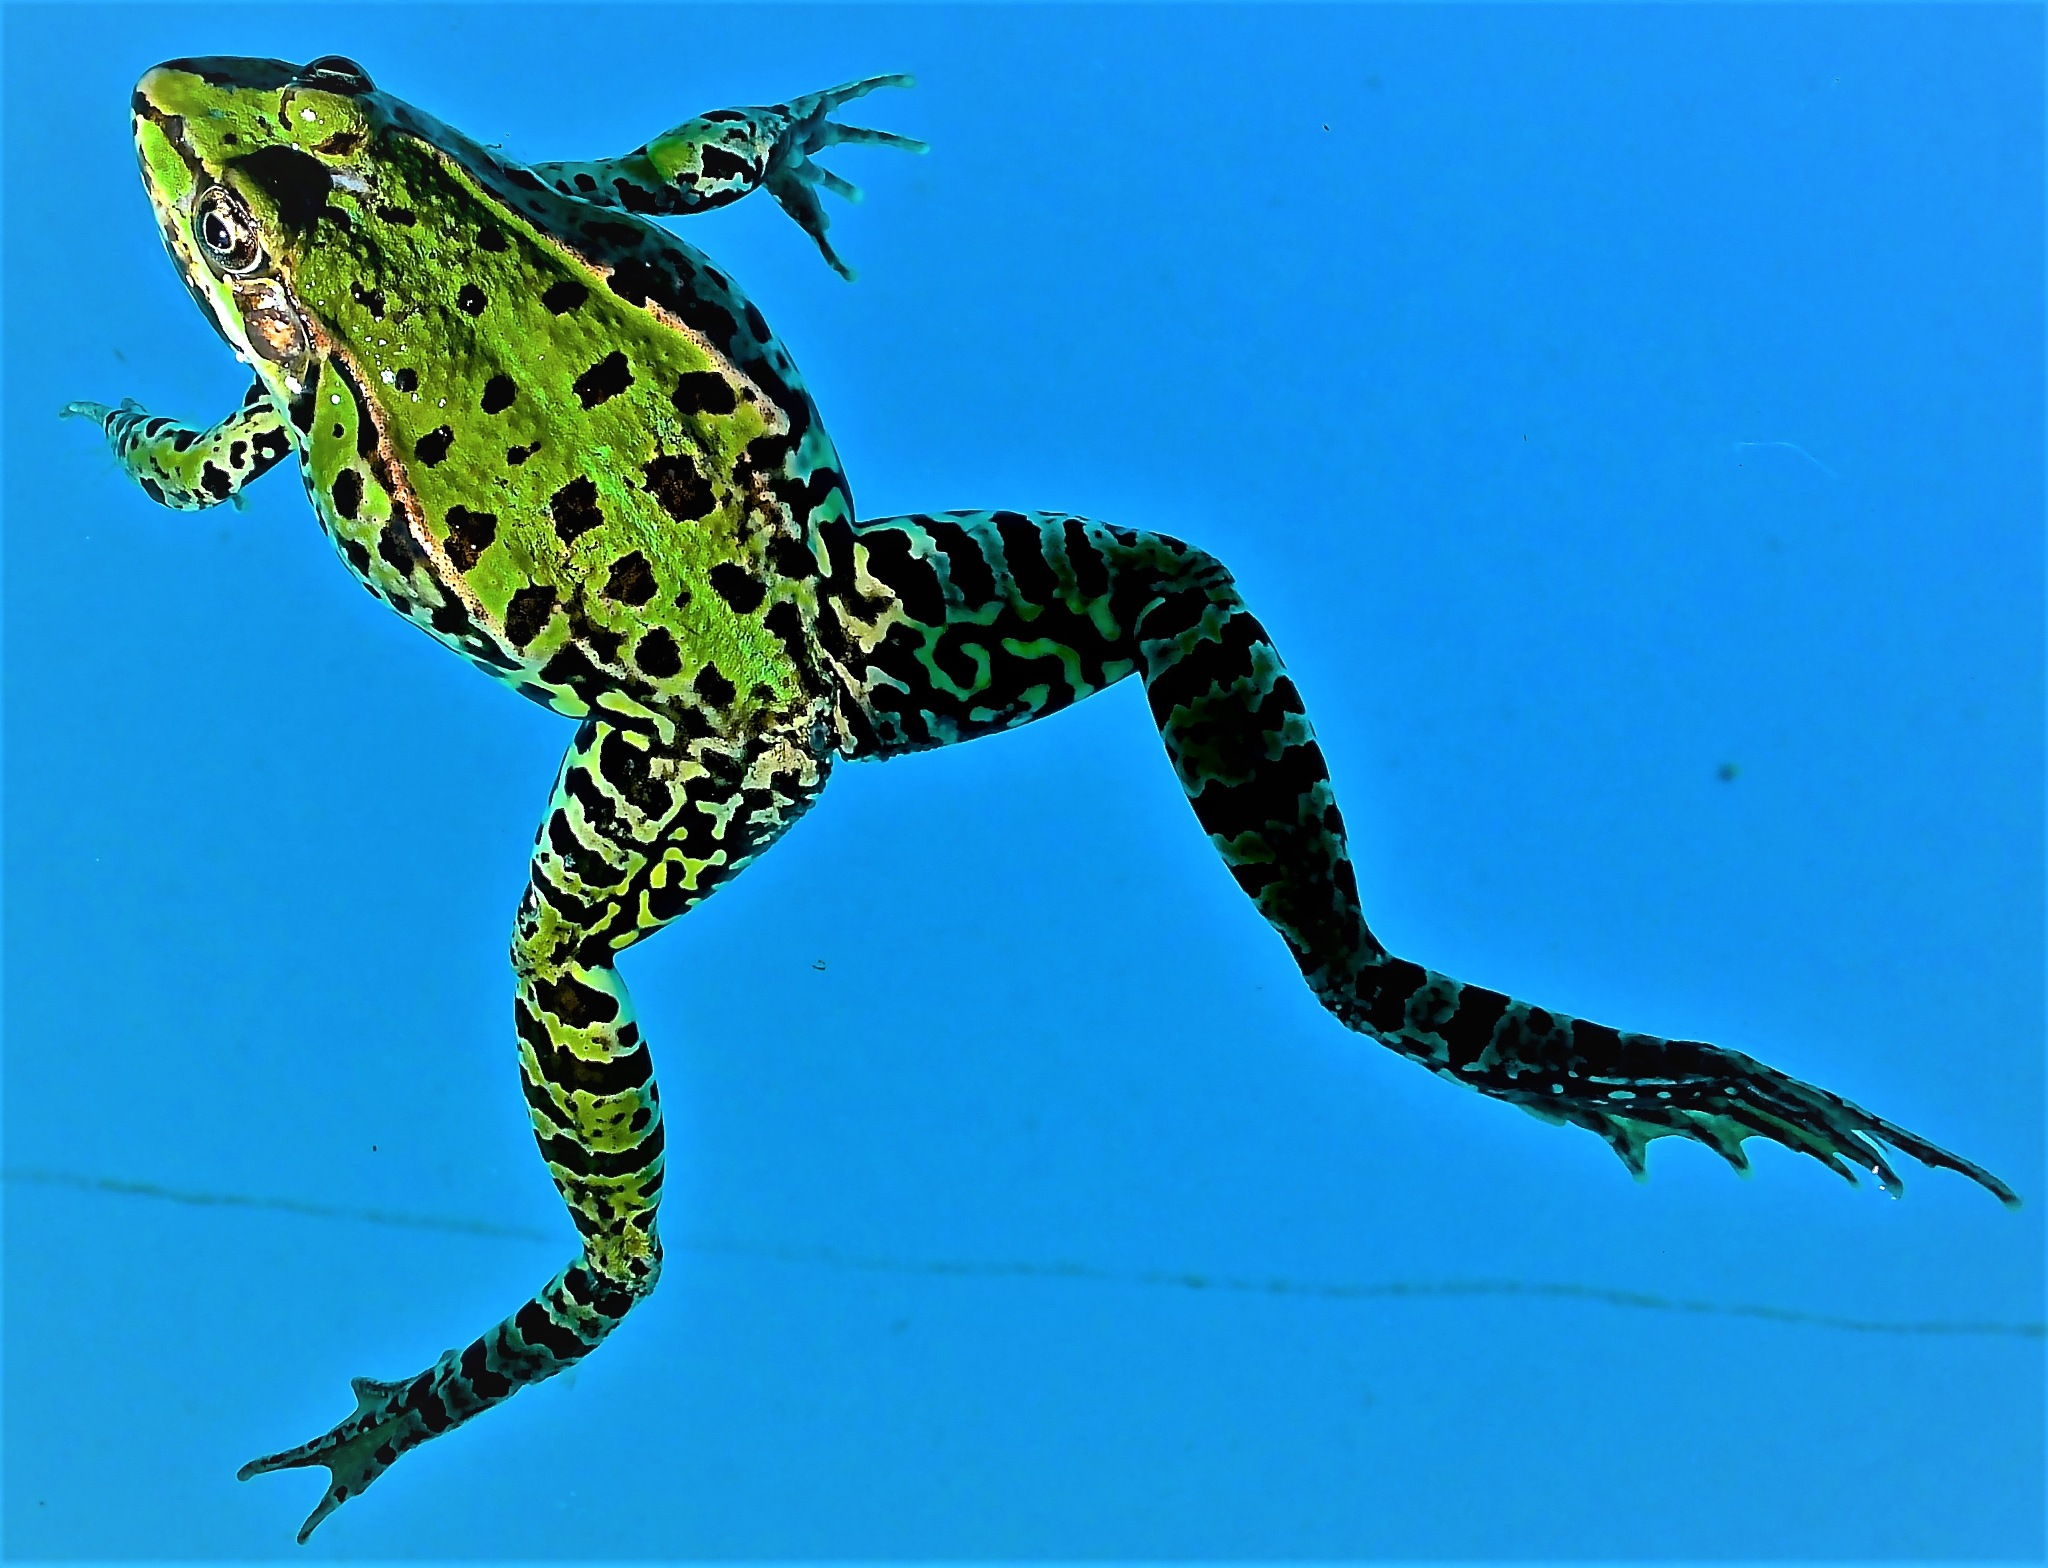 Swimming in the pool with a Tuscan Frog by Karen Bekker